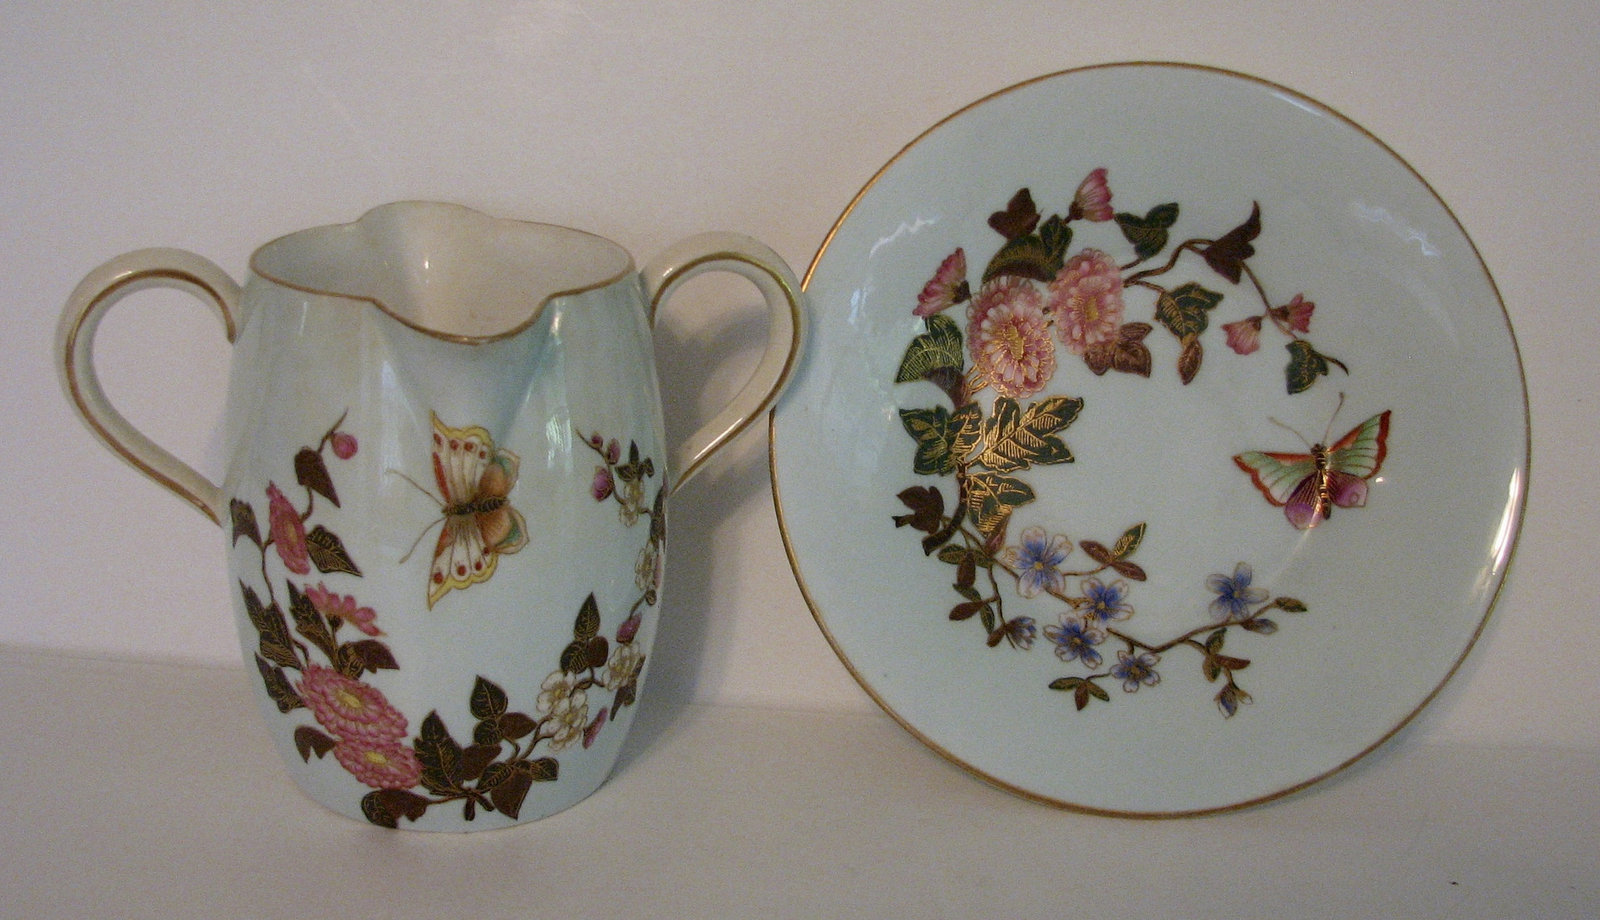 Antique Royal Worcester Creamer and Underplate 1800s